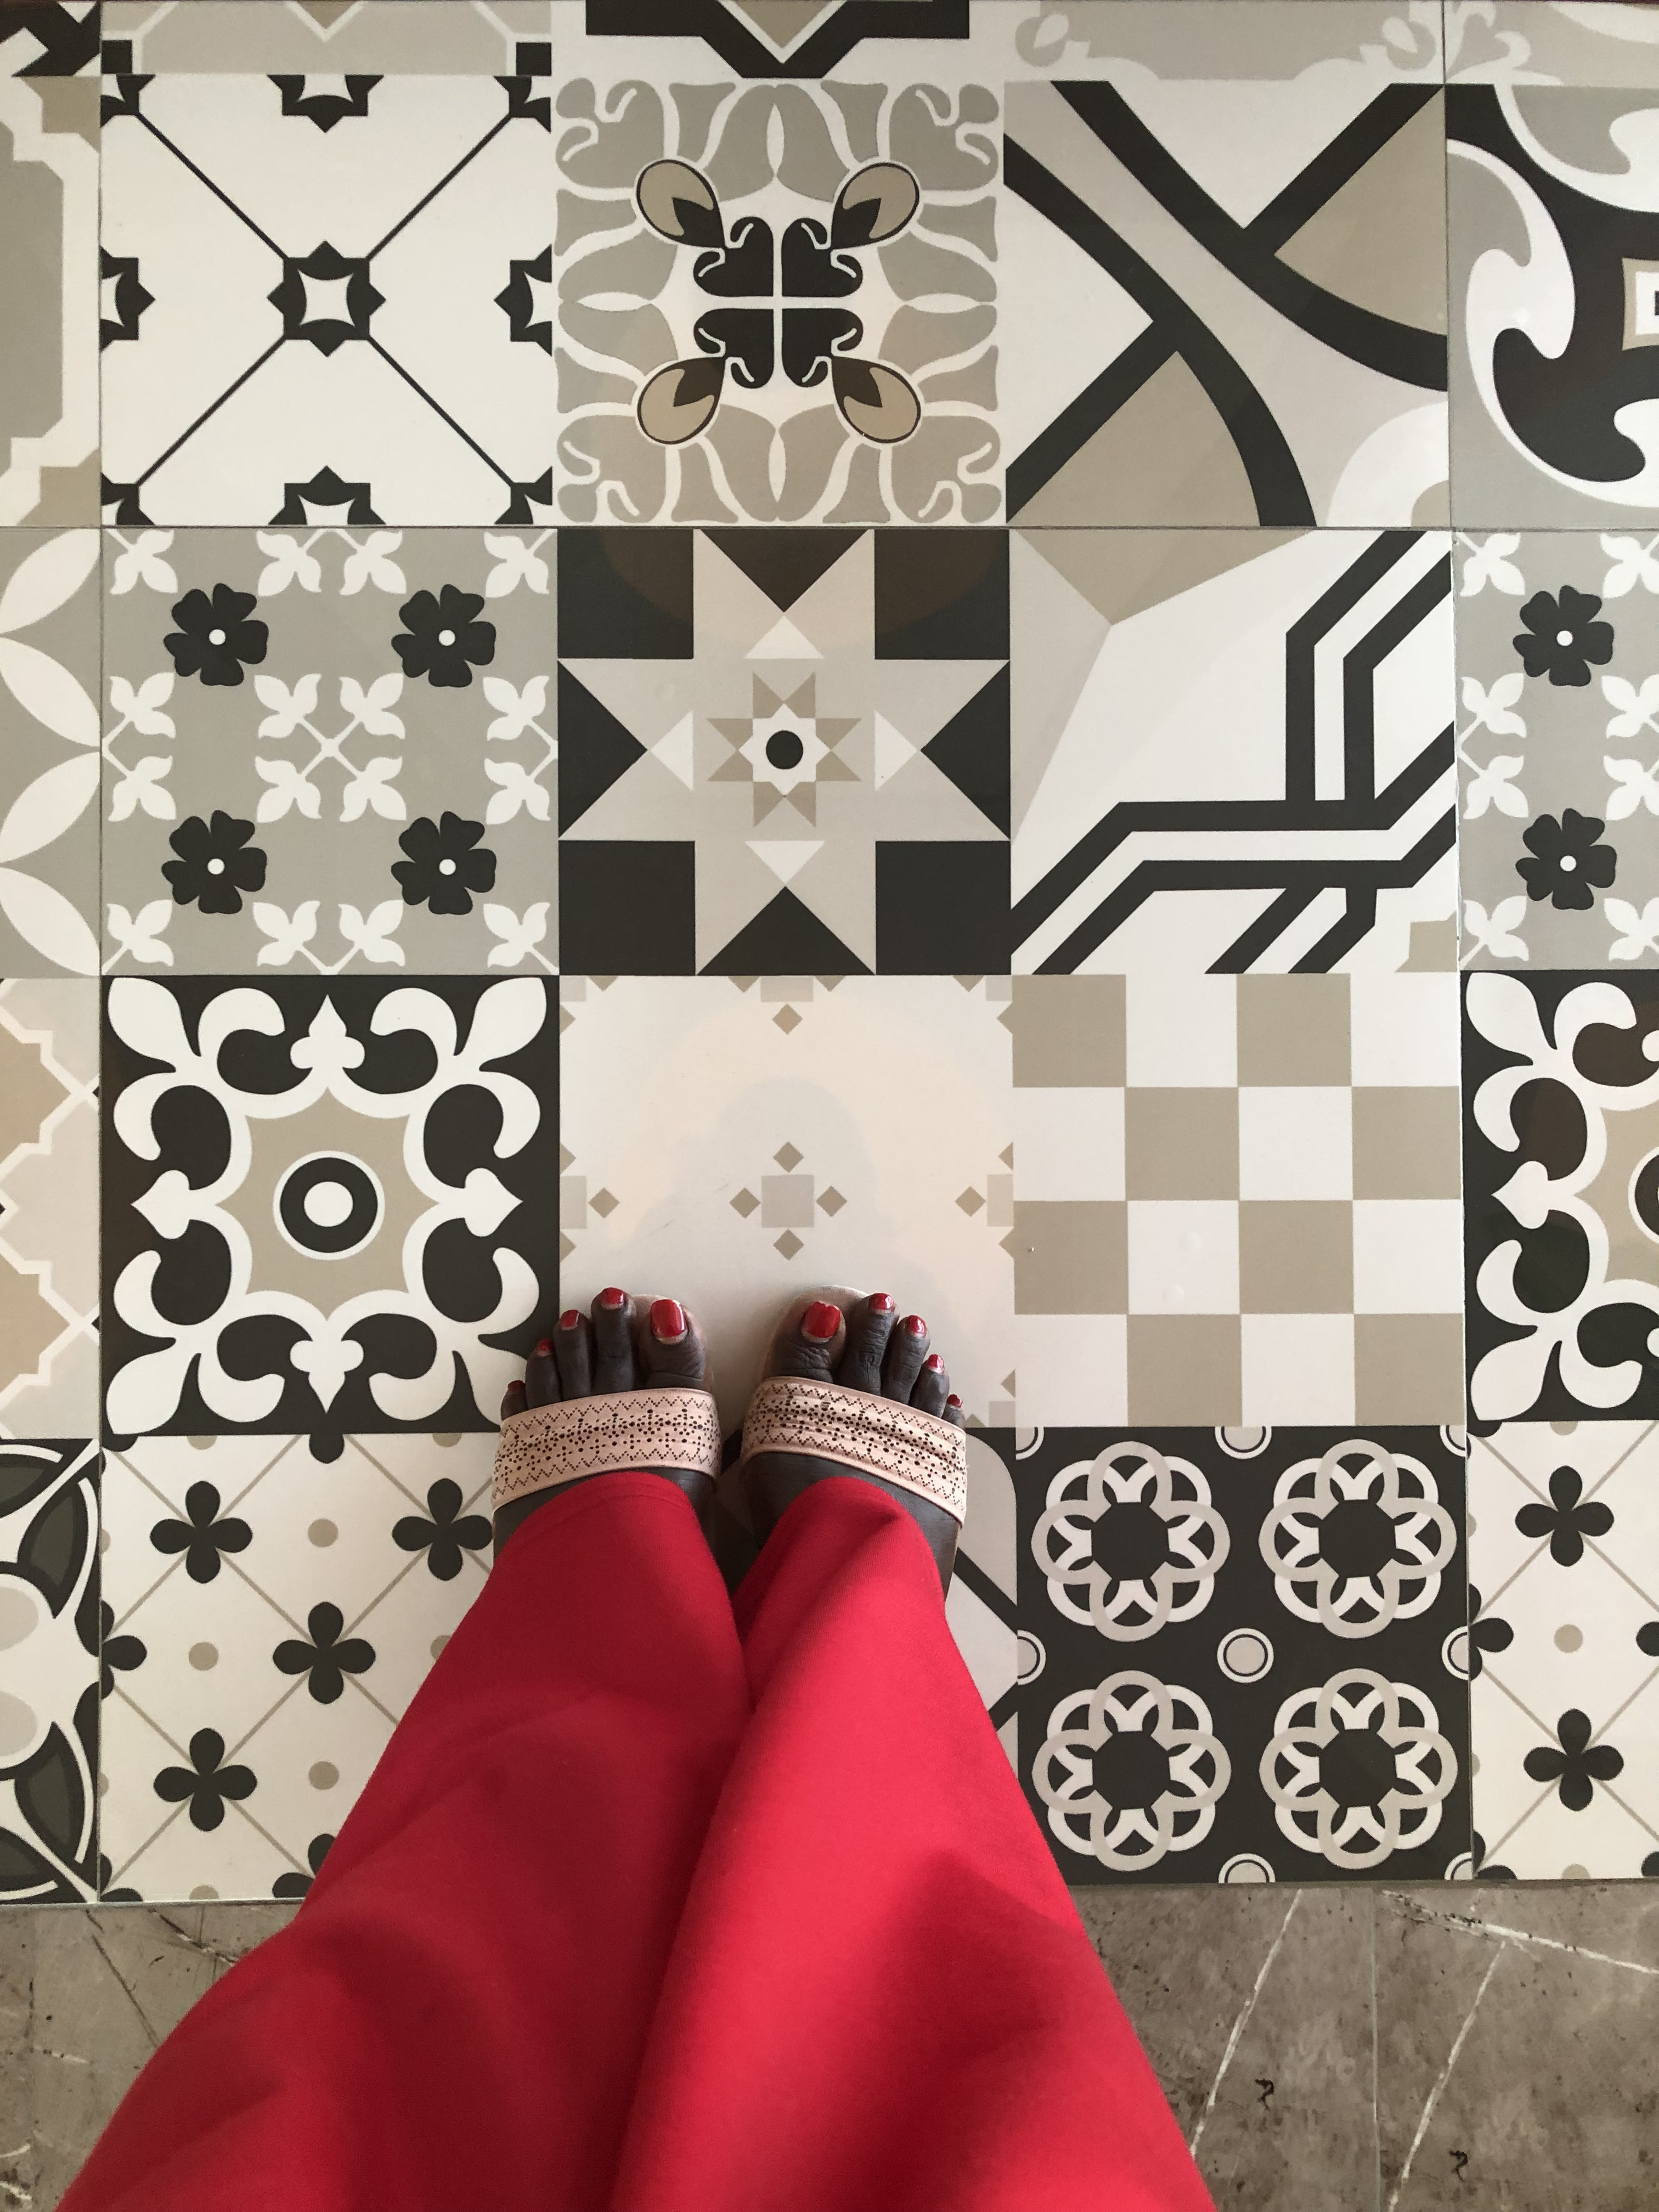 Turkey Tiles and red painted nails